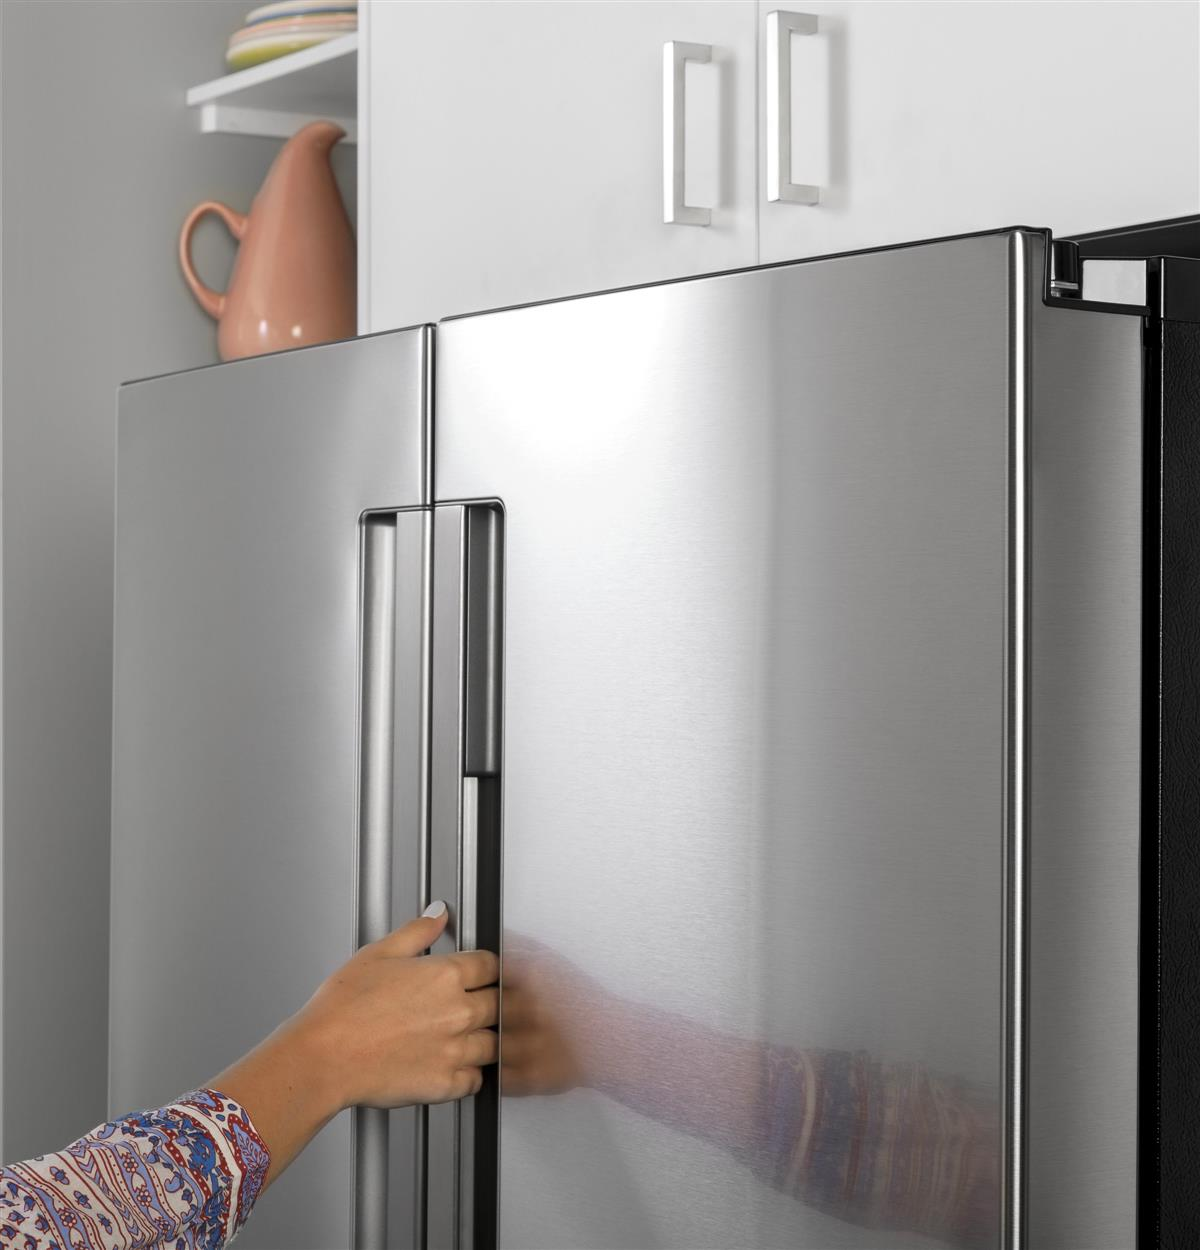 Sleek lines and a cool, integrated handle give your refrigerator a standout style of its own. Inside, sharp lighting and blue-tinted bins add flare and functionality.